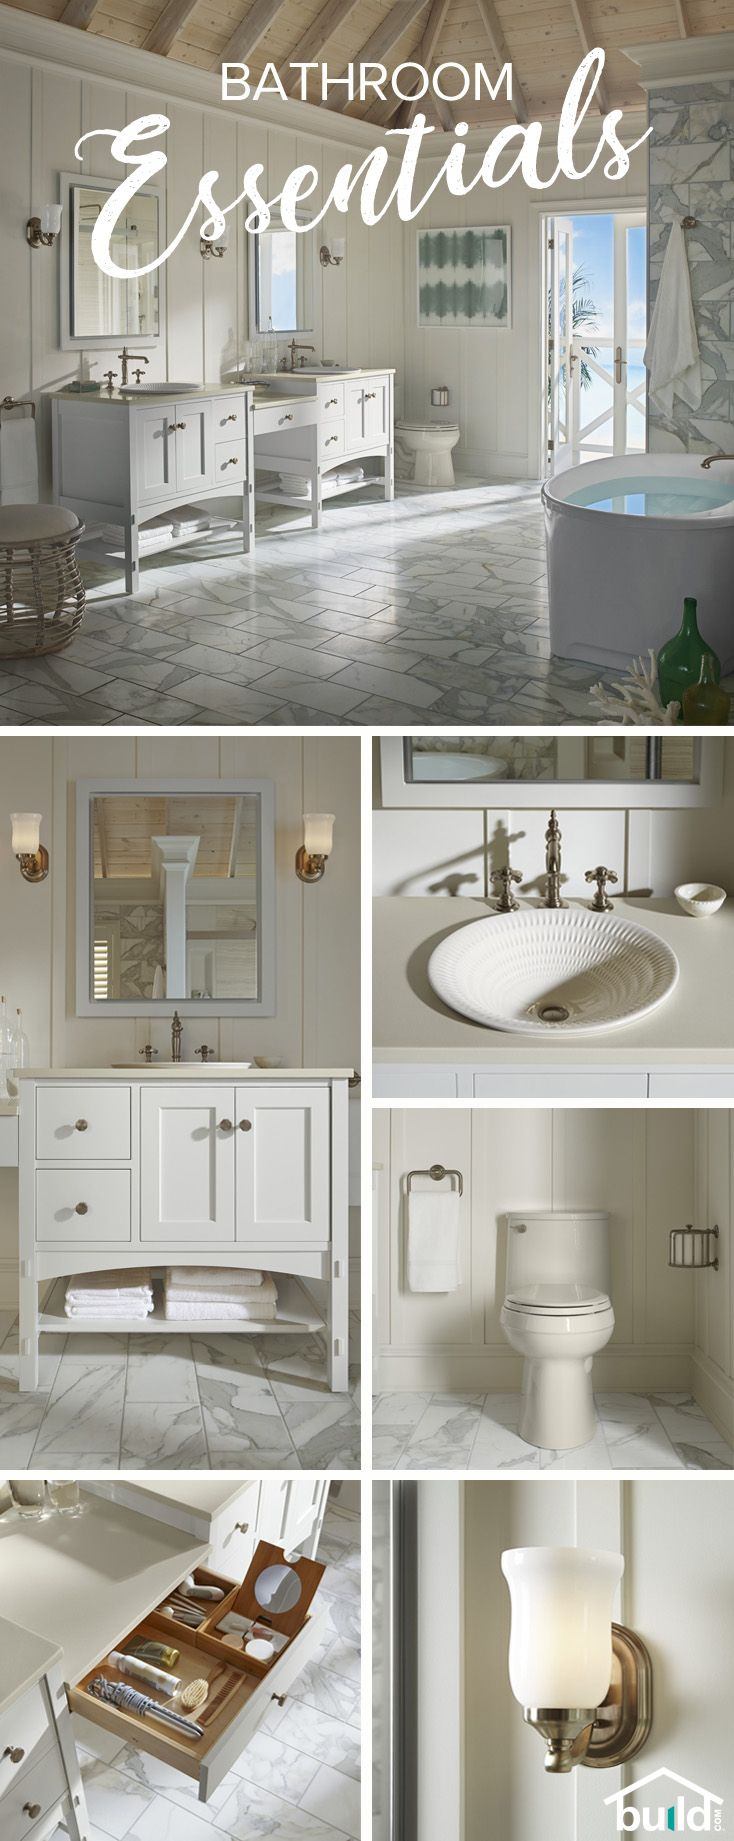 Find everything you need for the perfect bathroom makeover. From faucets, sinks, and toilets, to organization and lighting, we've got you covered.